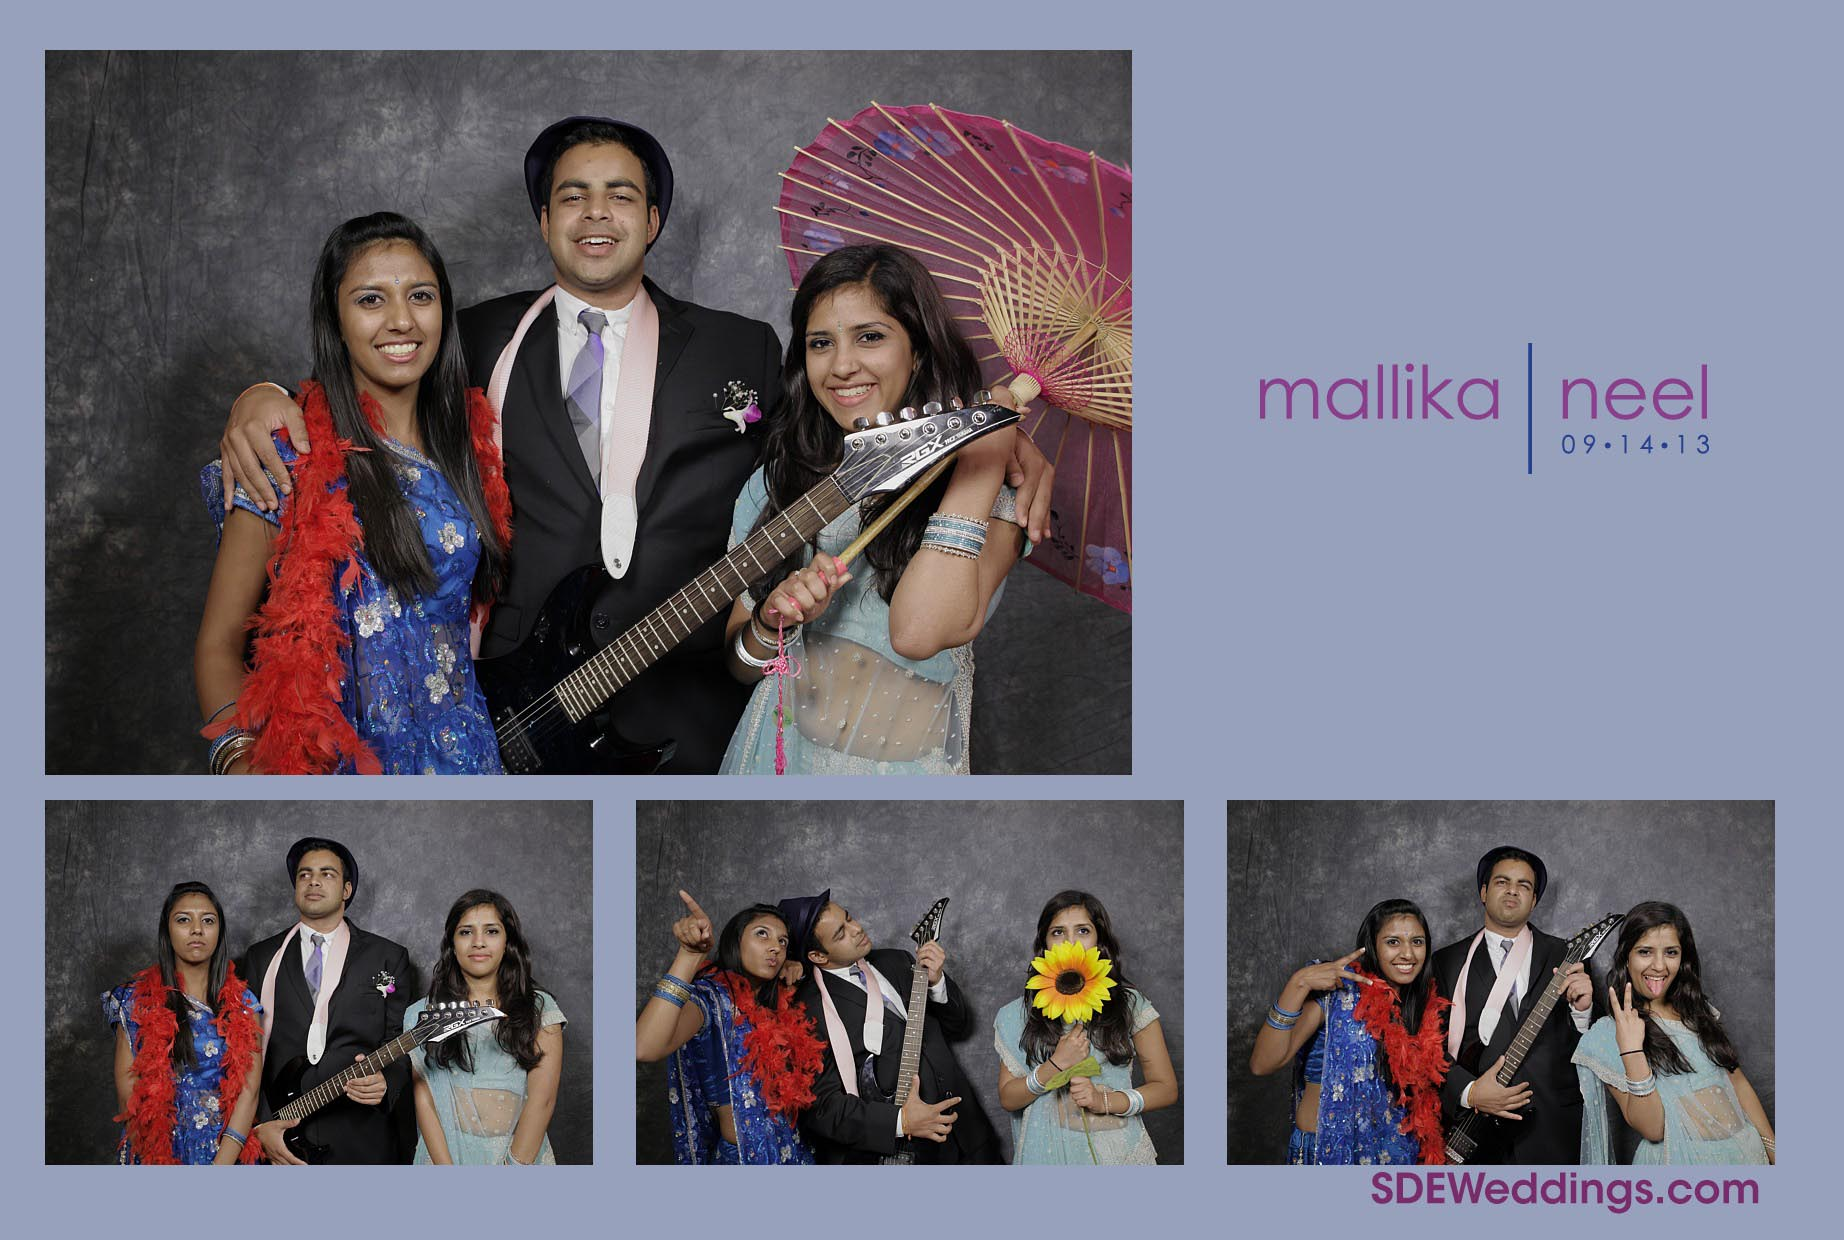 Neel Mallika Photobooth Photos